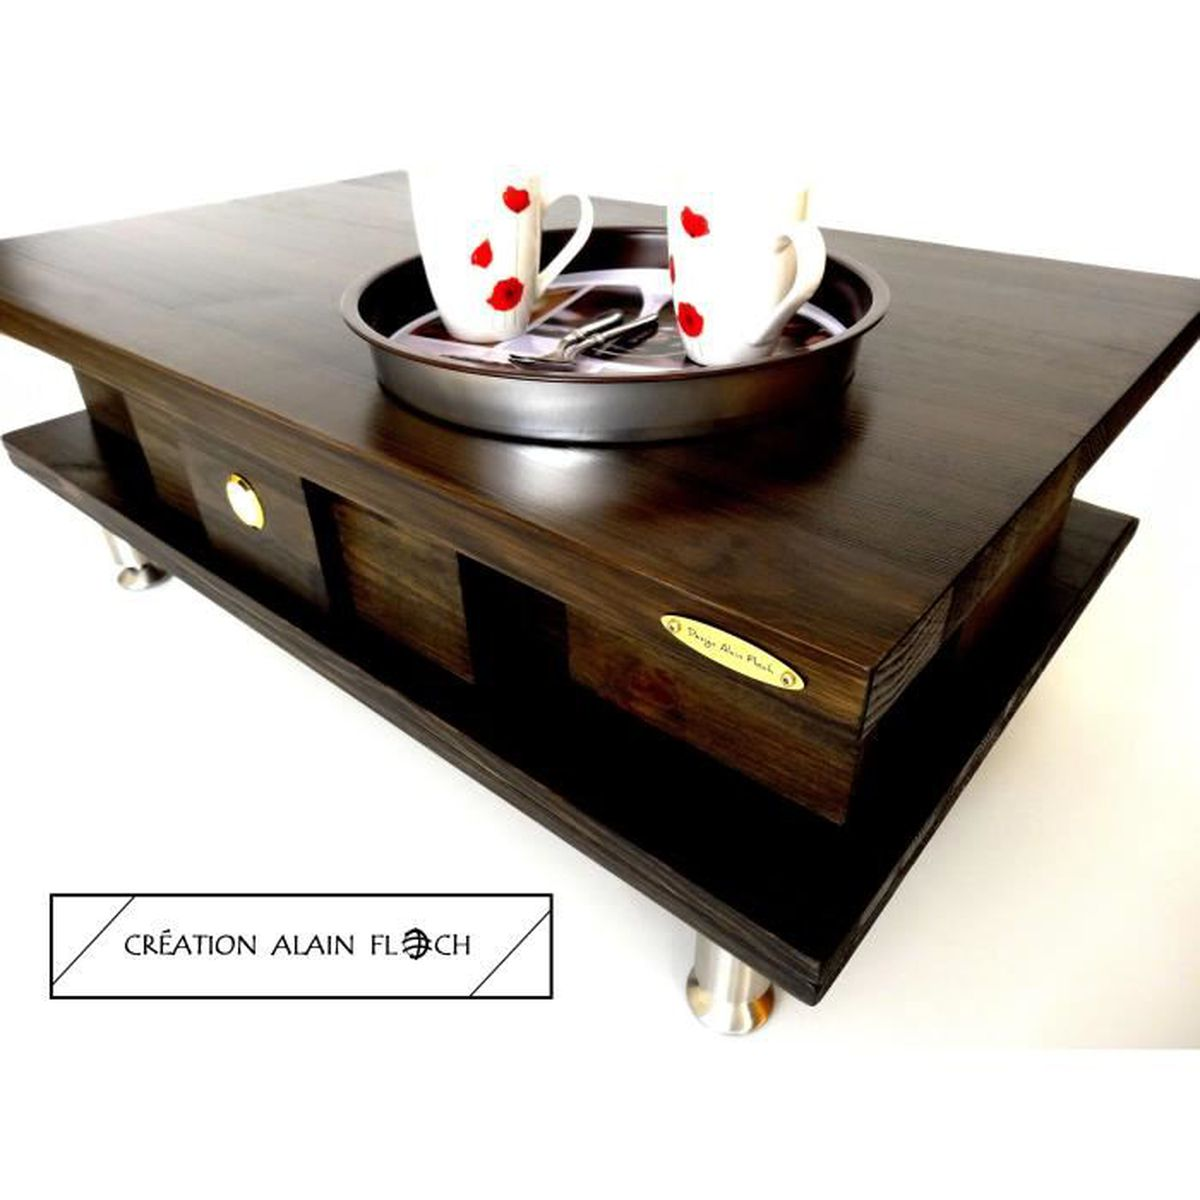 table basse soleta 2 design alain floch unique original moderne bois massif thermom tre. Black Bedroom Furniture Sets. Home Design Ideas